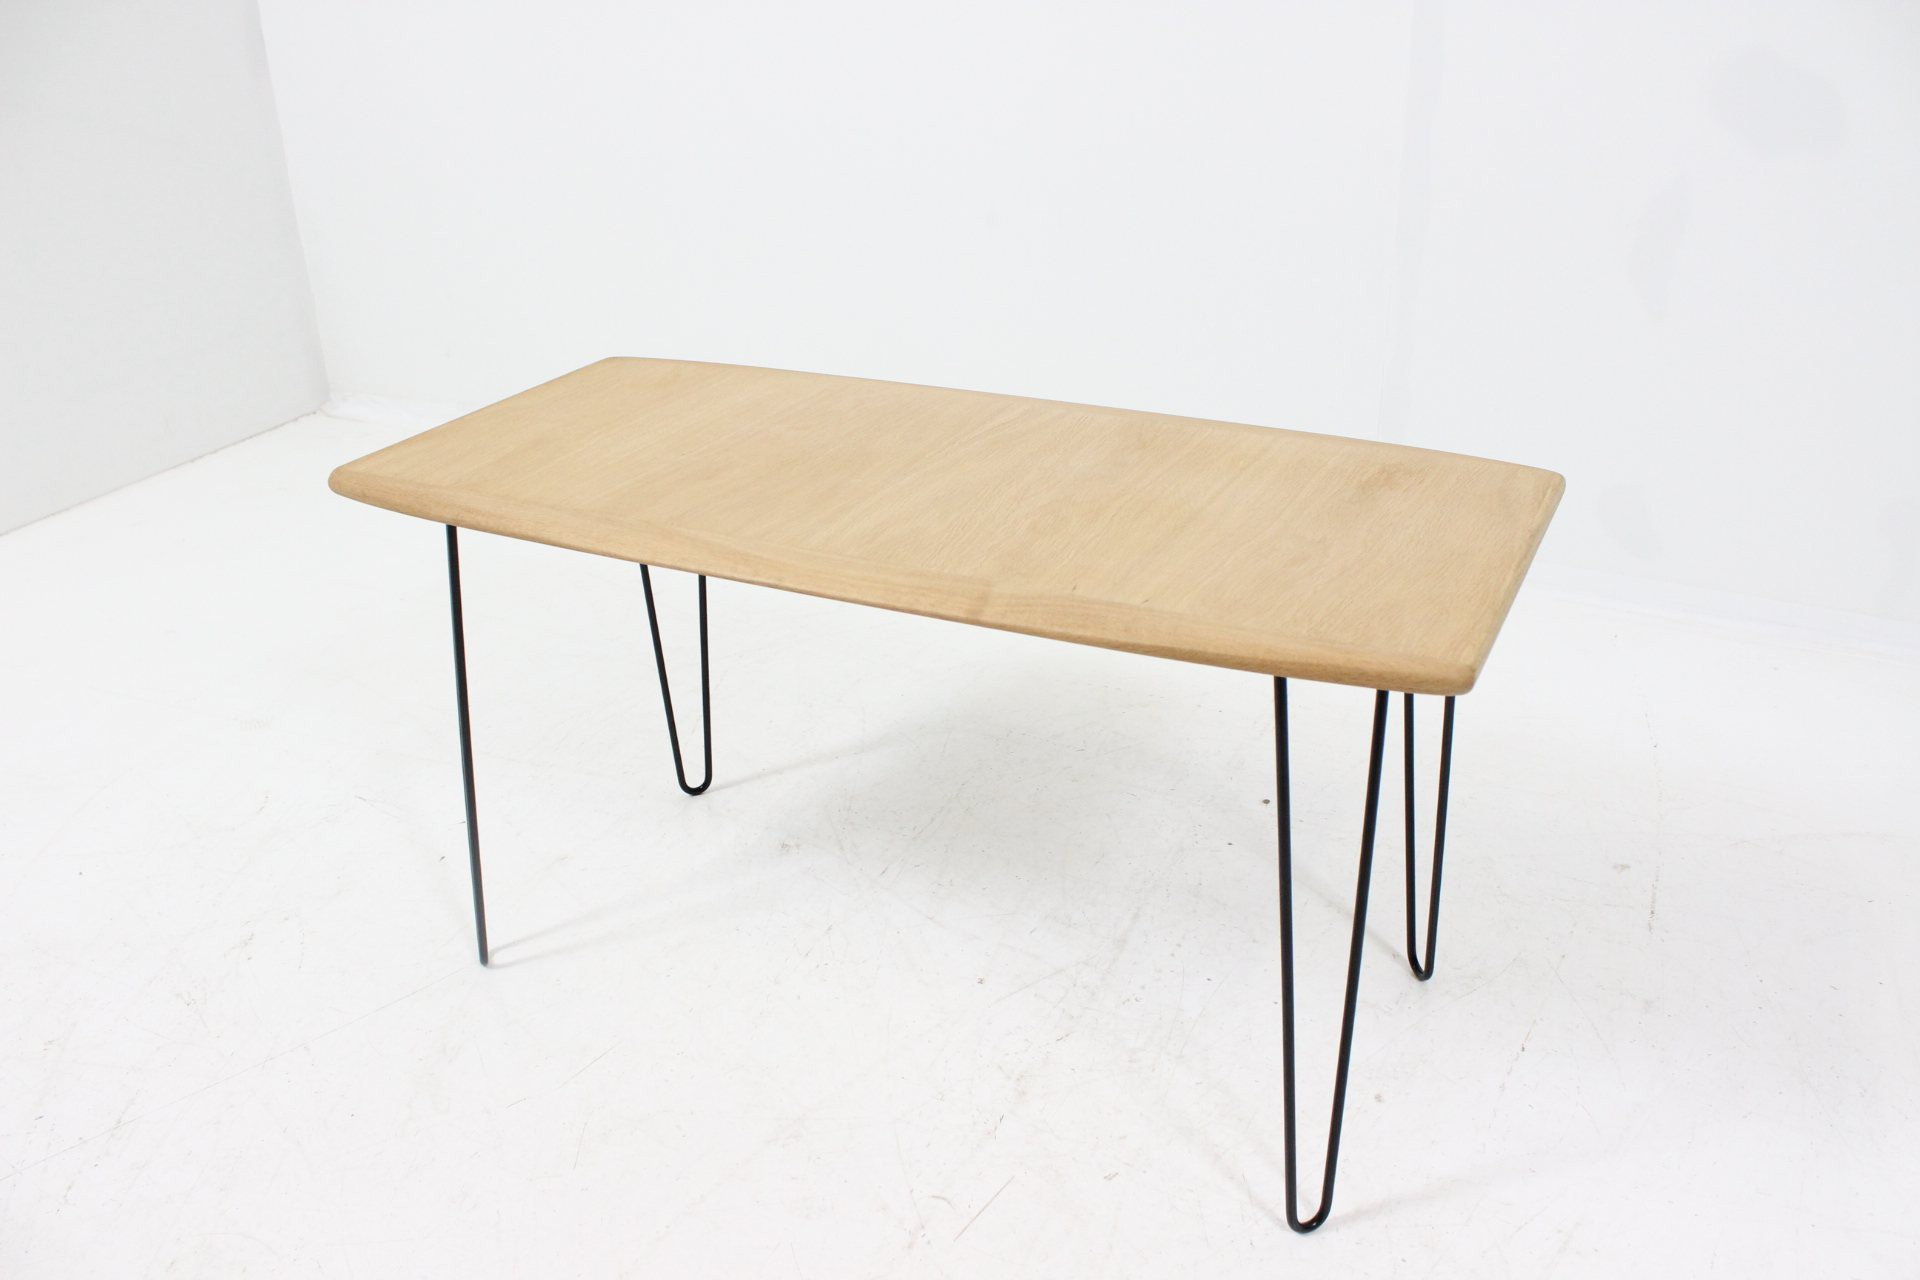 Organic Shaped Coffee Table In Oak 1960s Previous Next